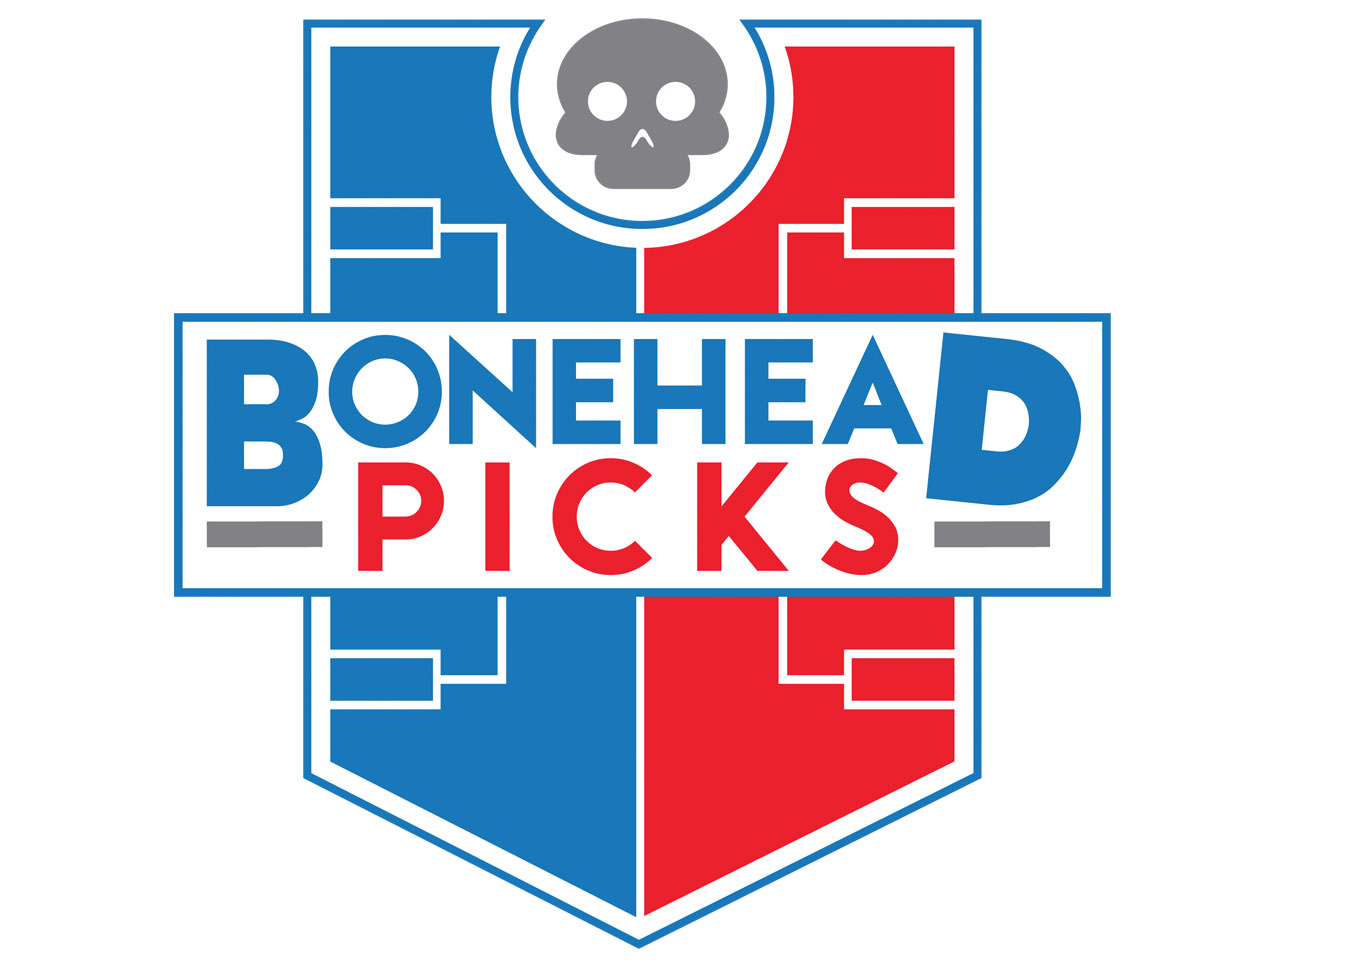 bonehead_picks_logo